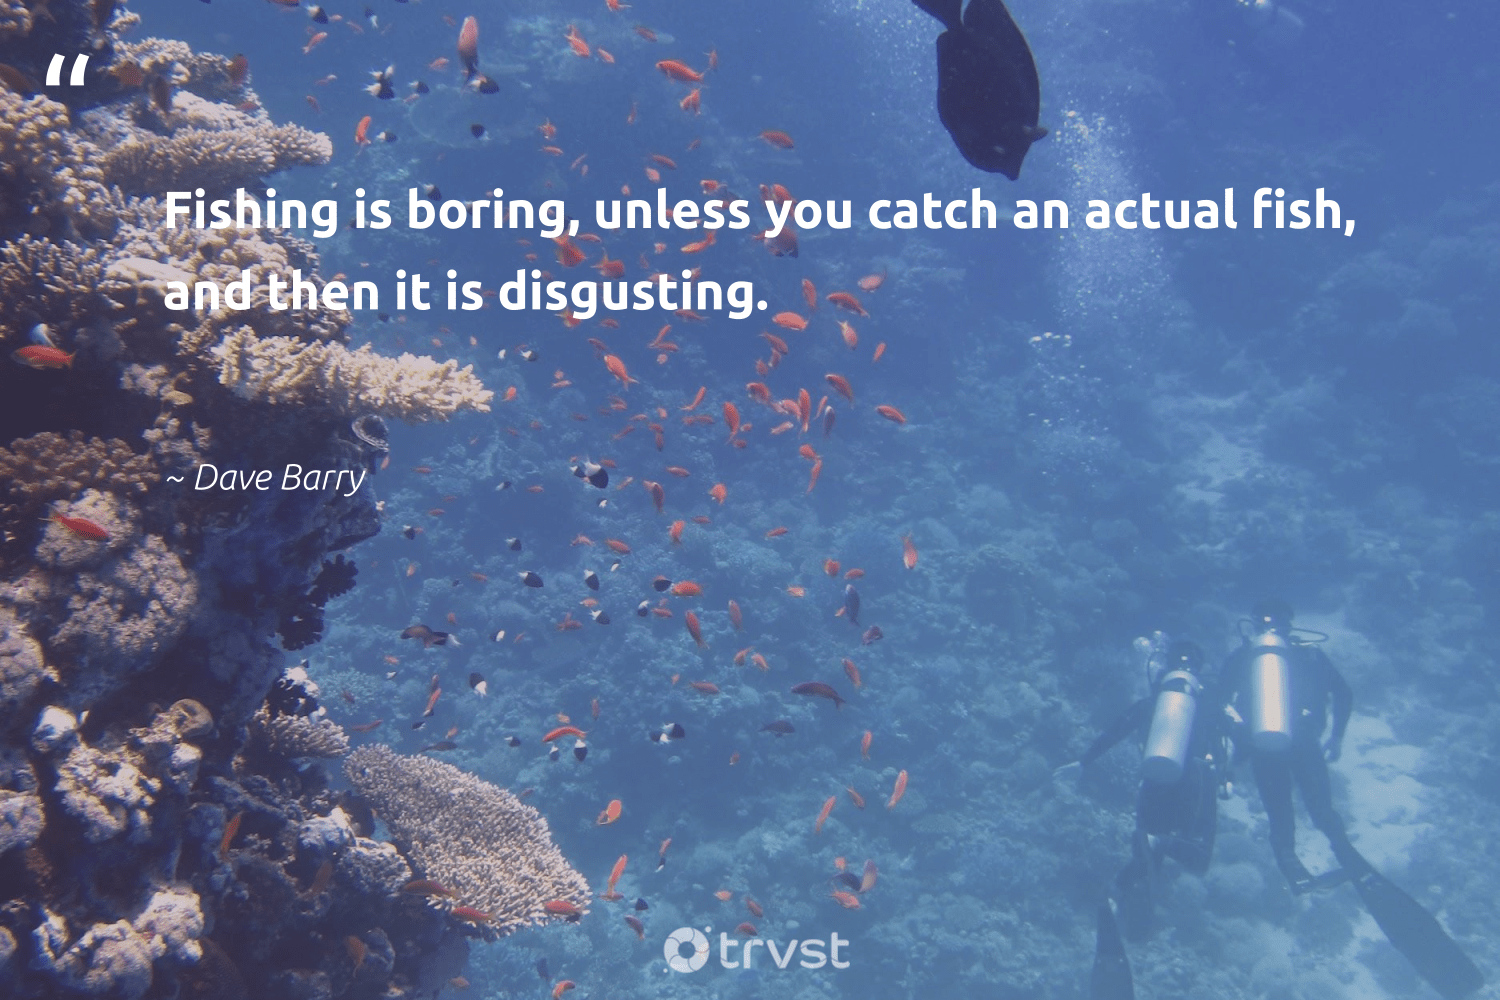 """""""Fishing is boring, unless you catch an actual fish, and then it is disgusting.""""  - Dave Barry #trvst #quotes #fishing #fish #oceanlove #thinkgreen #protecttheoceans #ecoconscious #marinelife #changetheworld #oceans #bethechange"""